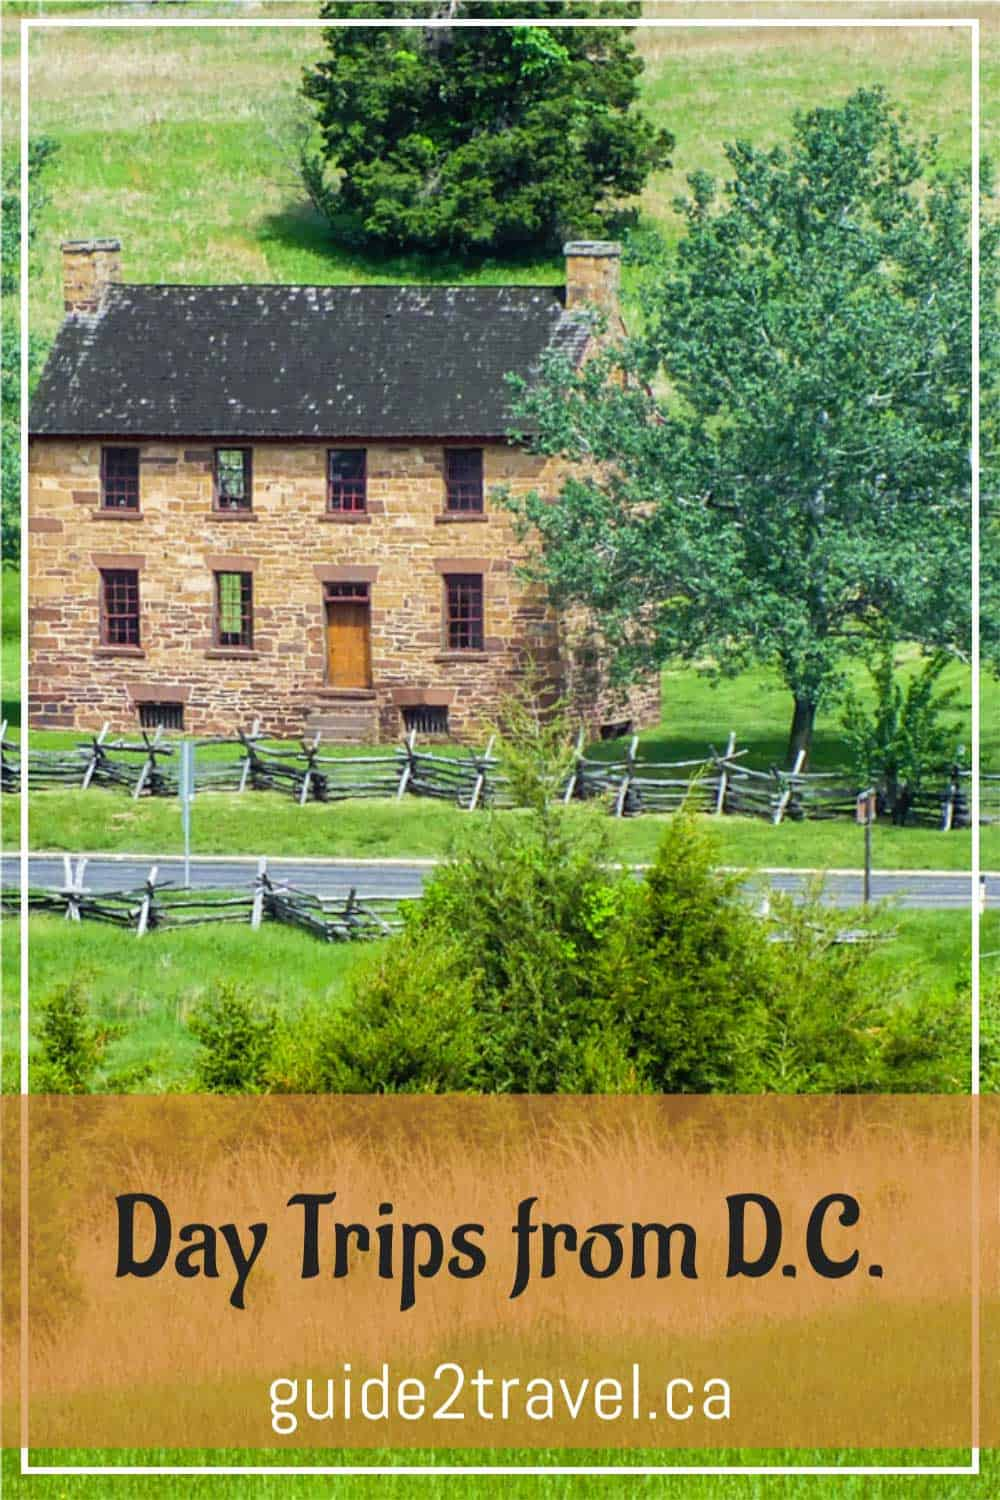 8 exciting day trips from Washington, D.C.